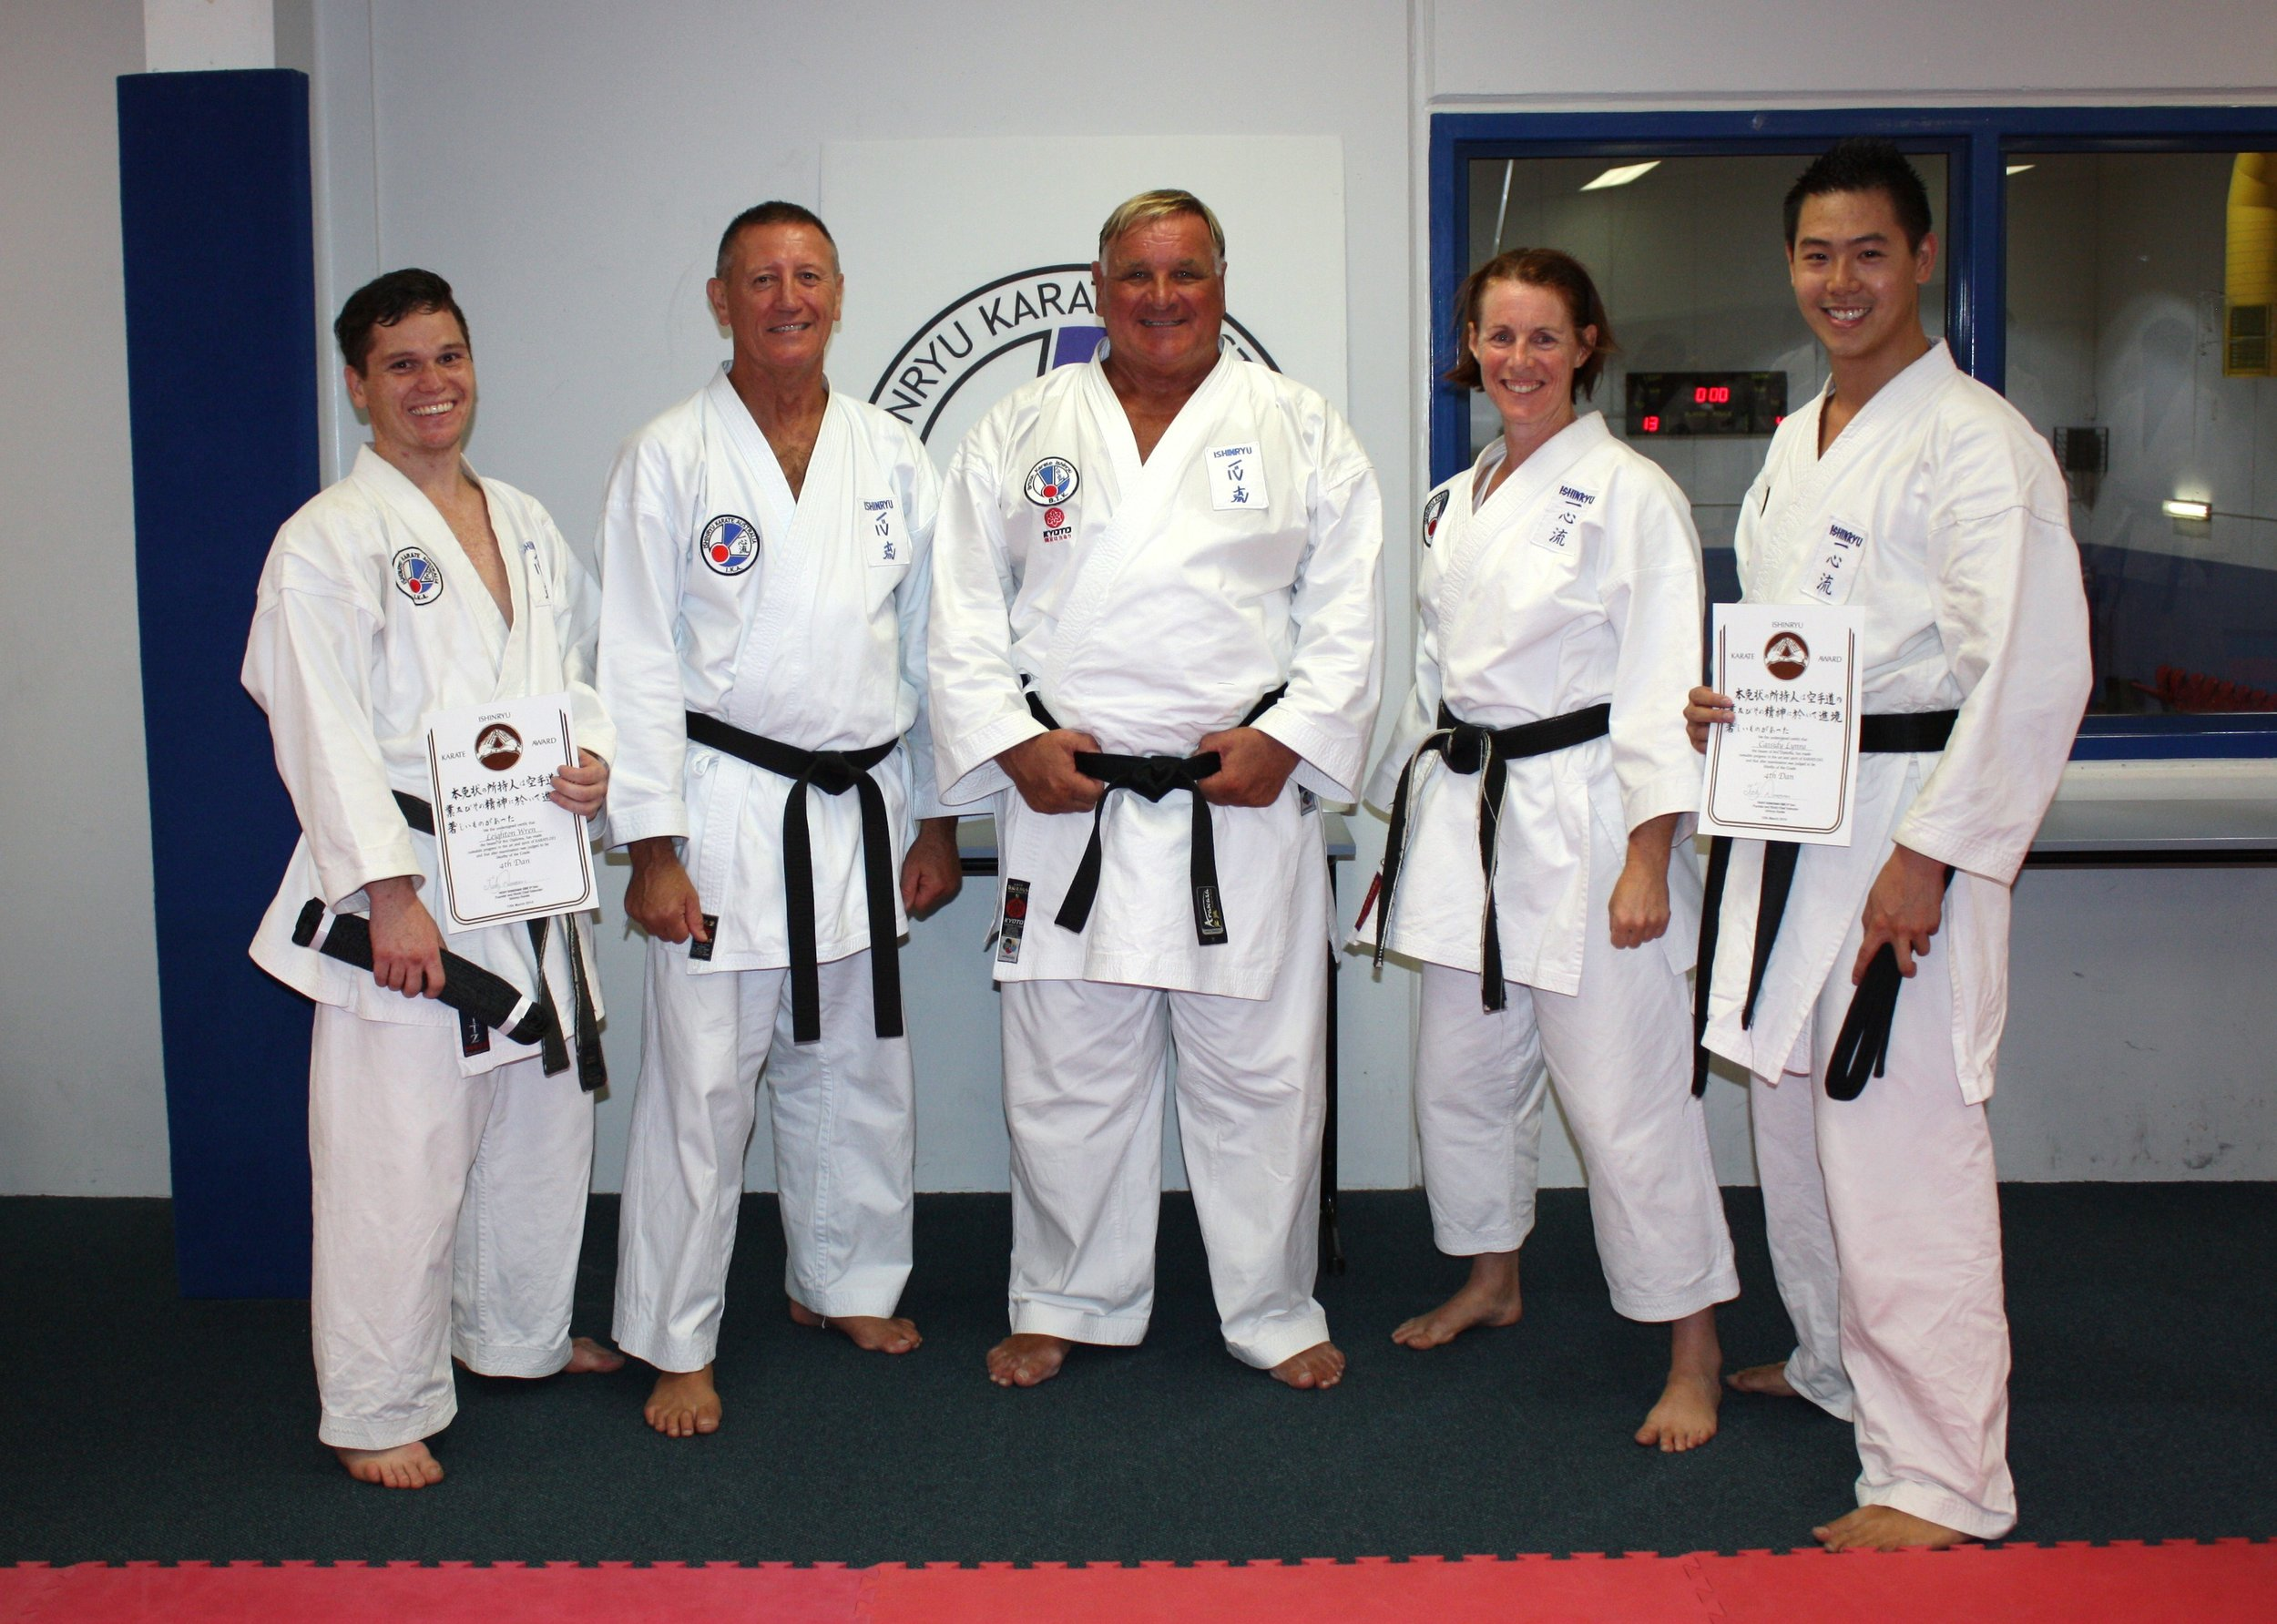 From left to right: Sensei Leighton, Sensei Tony, Sensei Ticky, Sensei Alison, Sensei Cassidy.